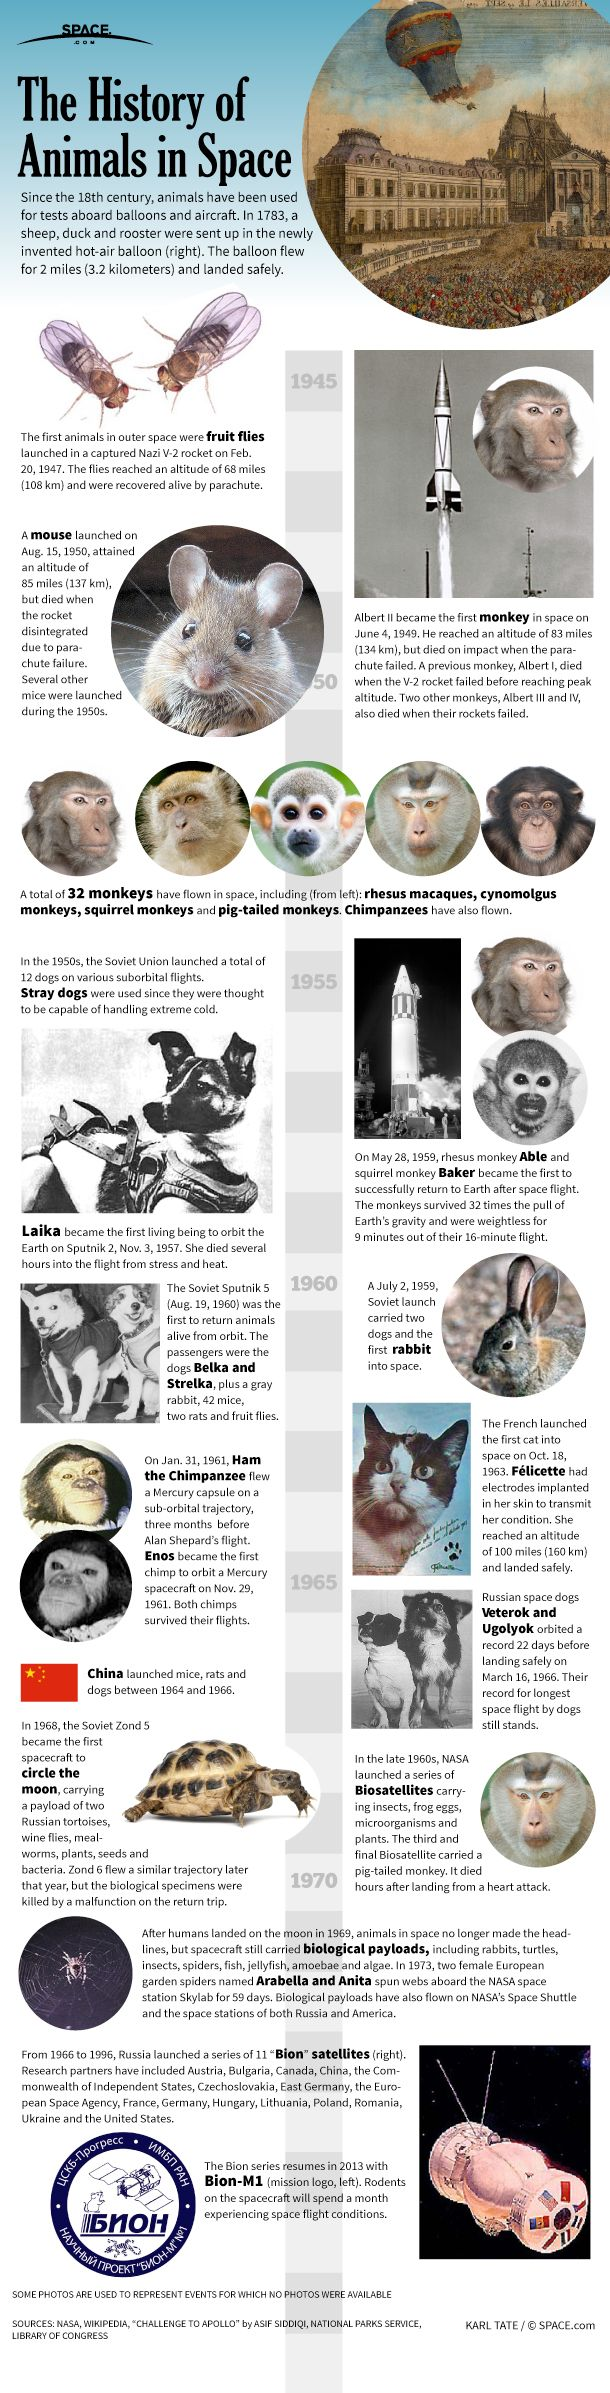 RIP, Laika: Pioneering Dog Launched 60 Years Ago Today | Space